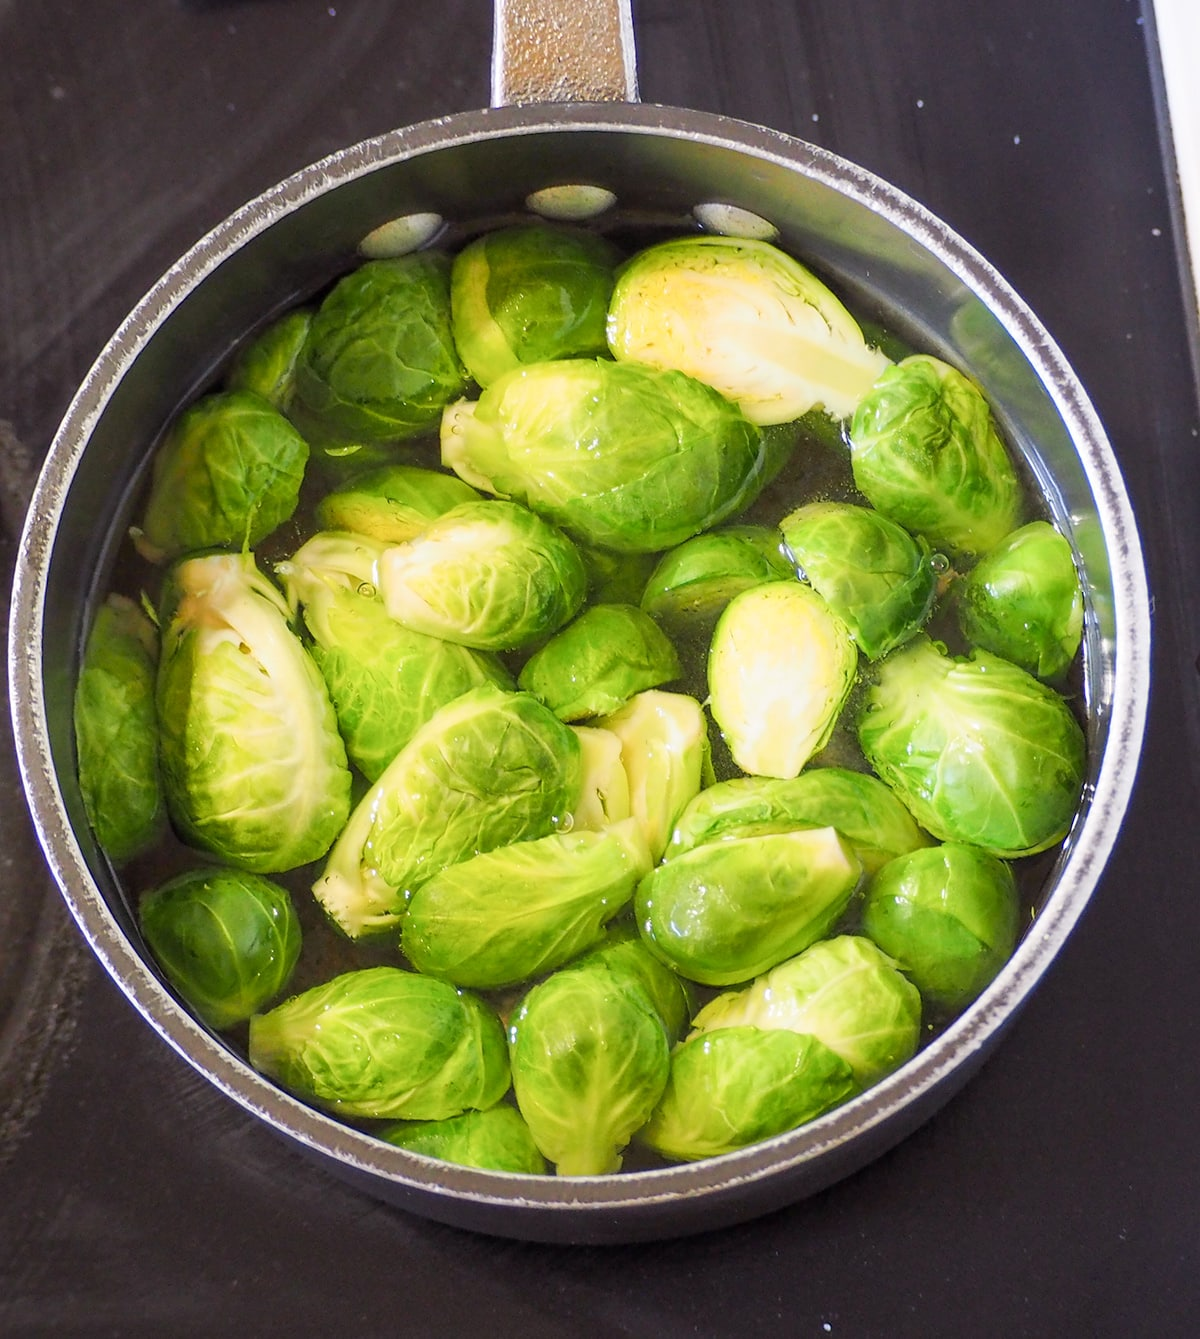 brussel sprouts in pot of water on stove